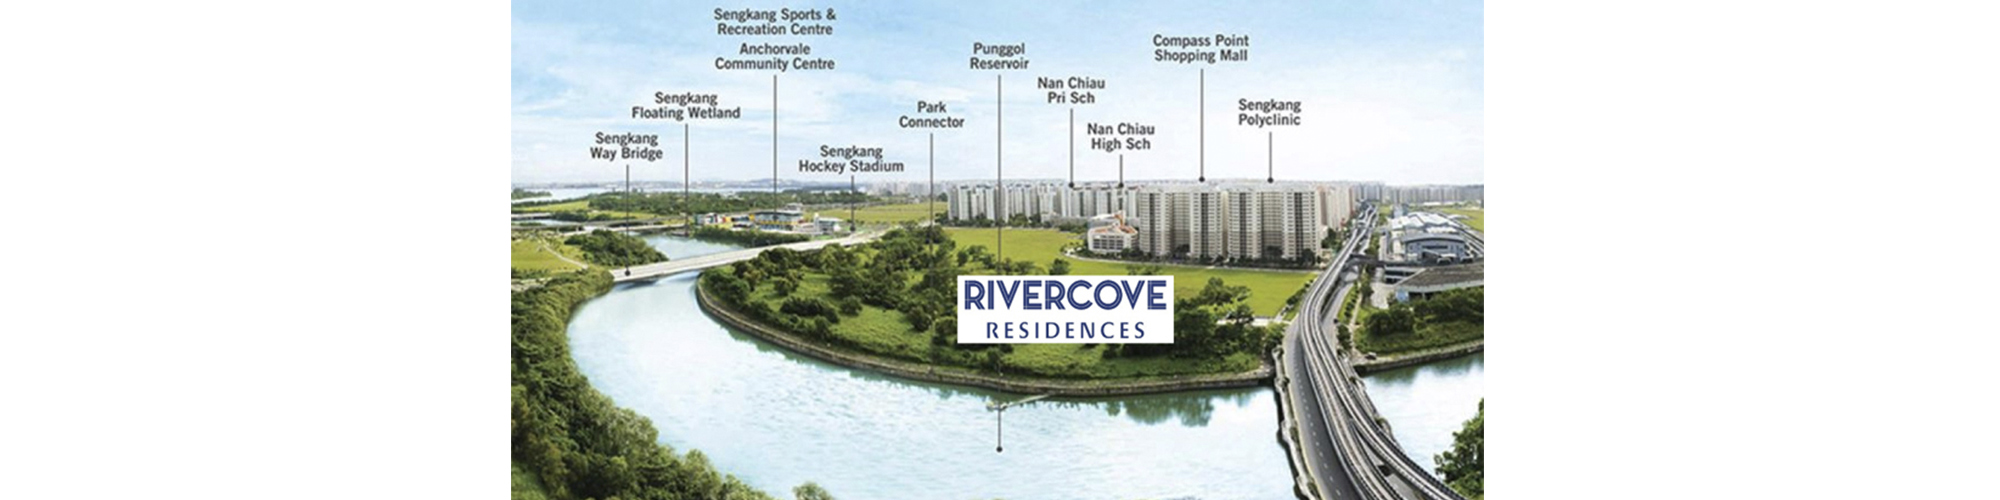 Rivercove-Residences-EC-3